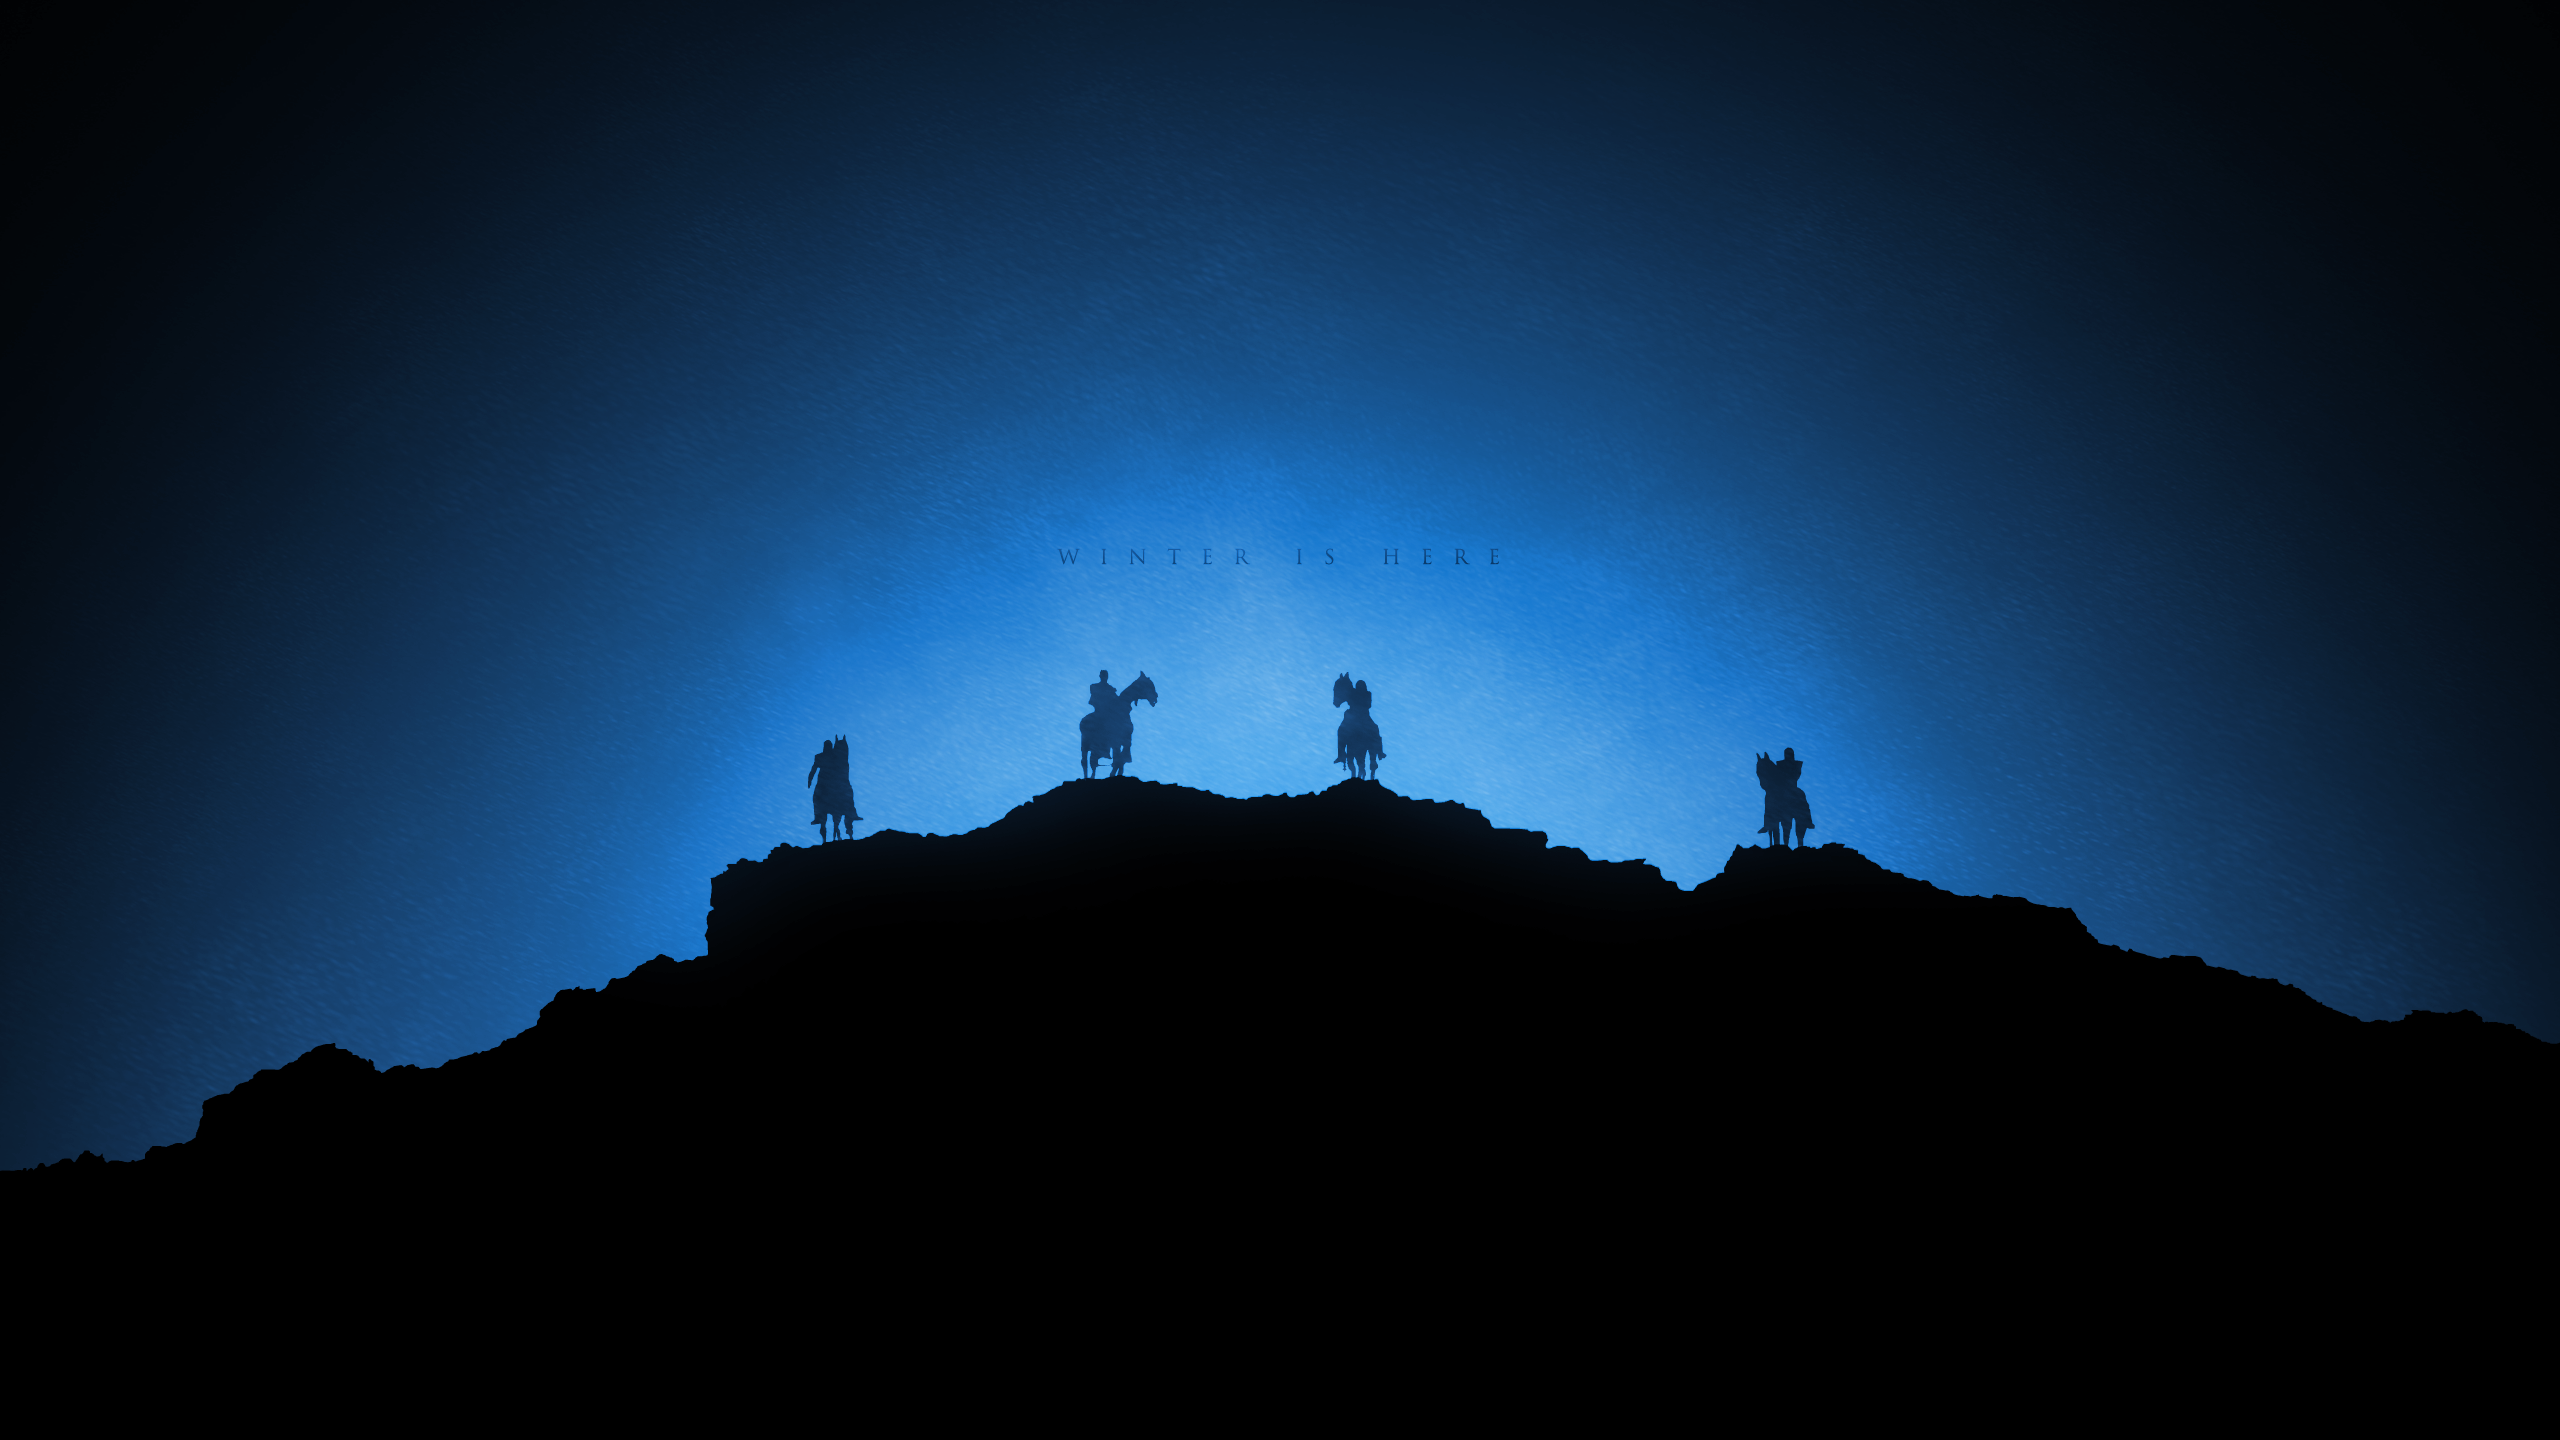 Game Of Thrones Wallpaper White Walkers By Rocklou On Deviantart